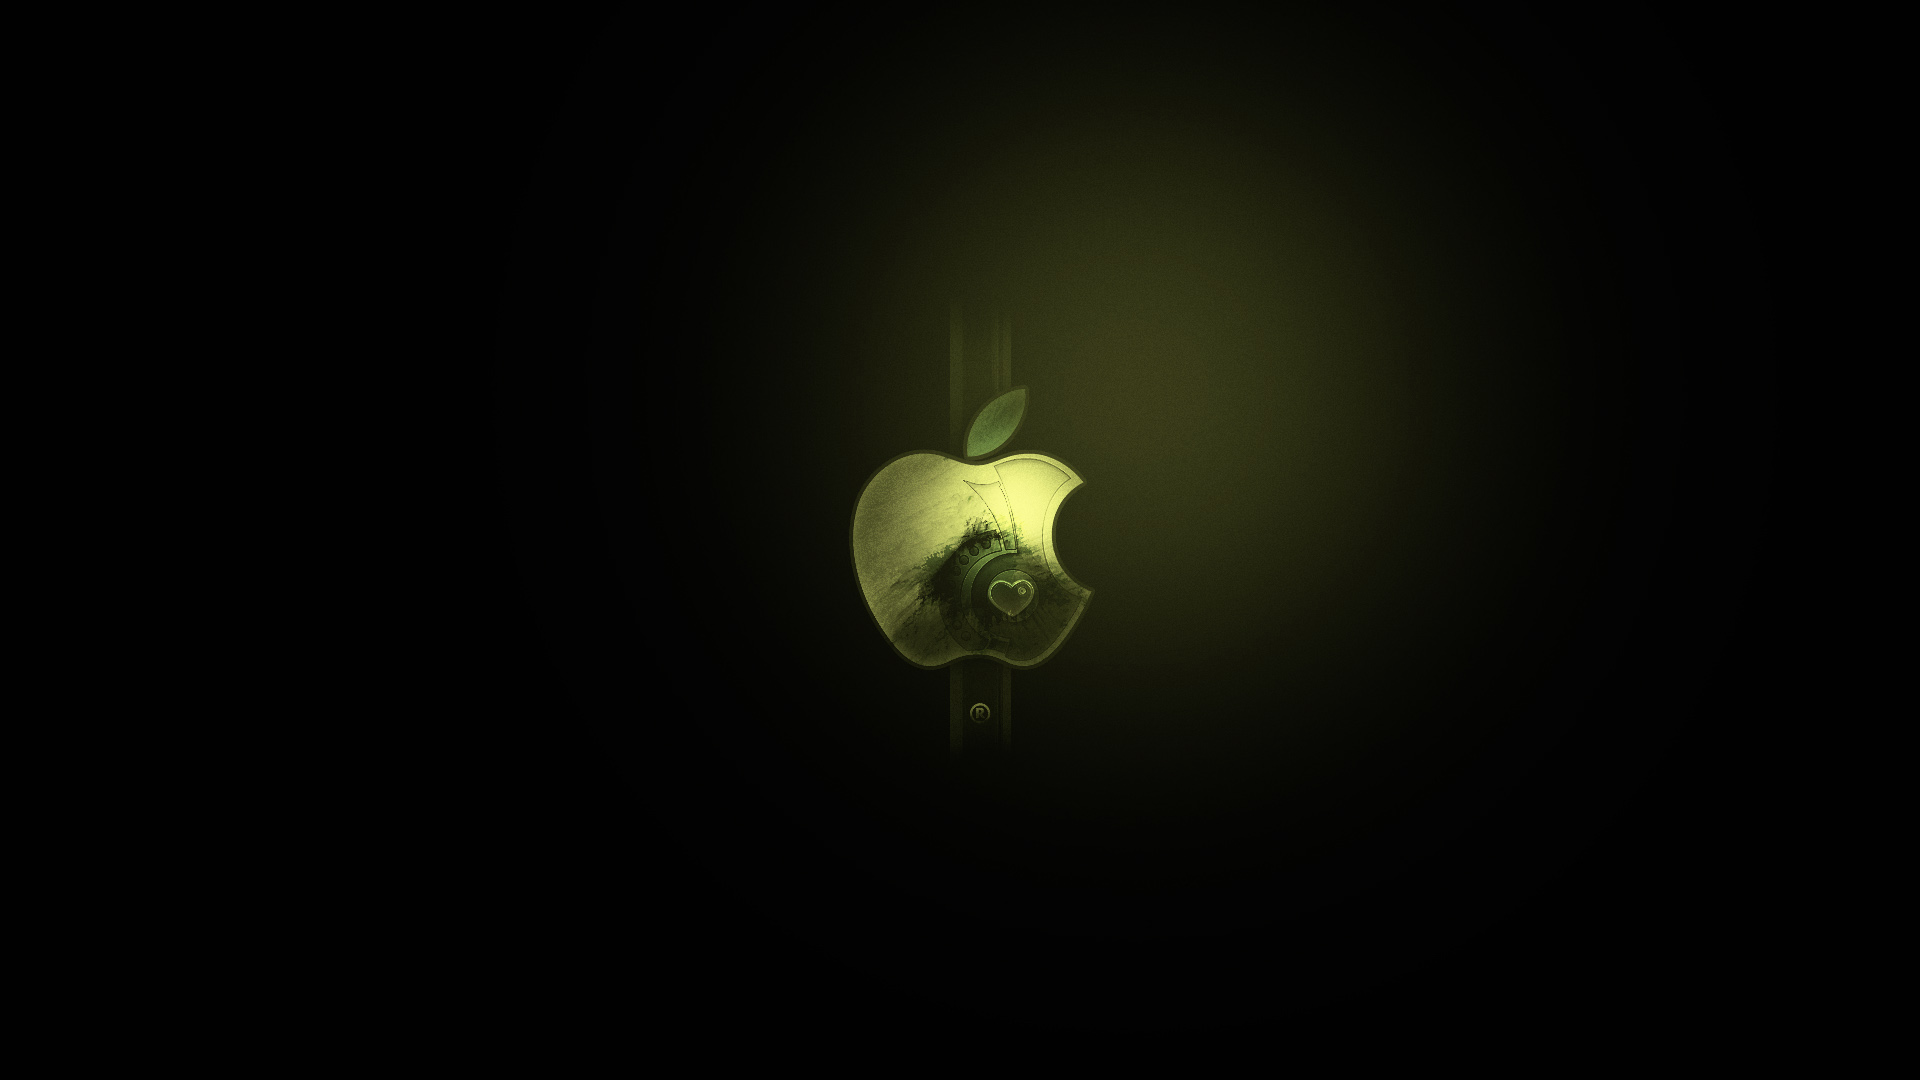 Mac Wallpaper Downloads Wallpaper